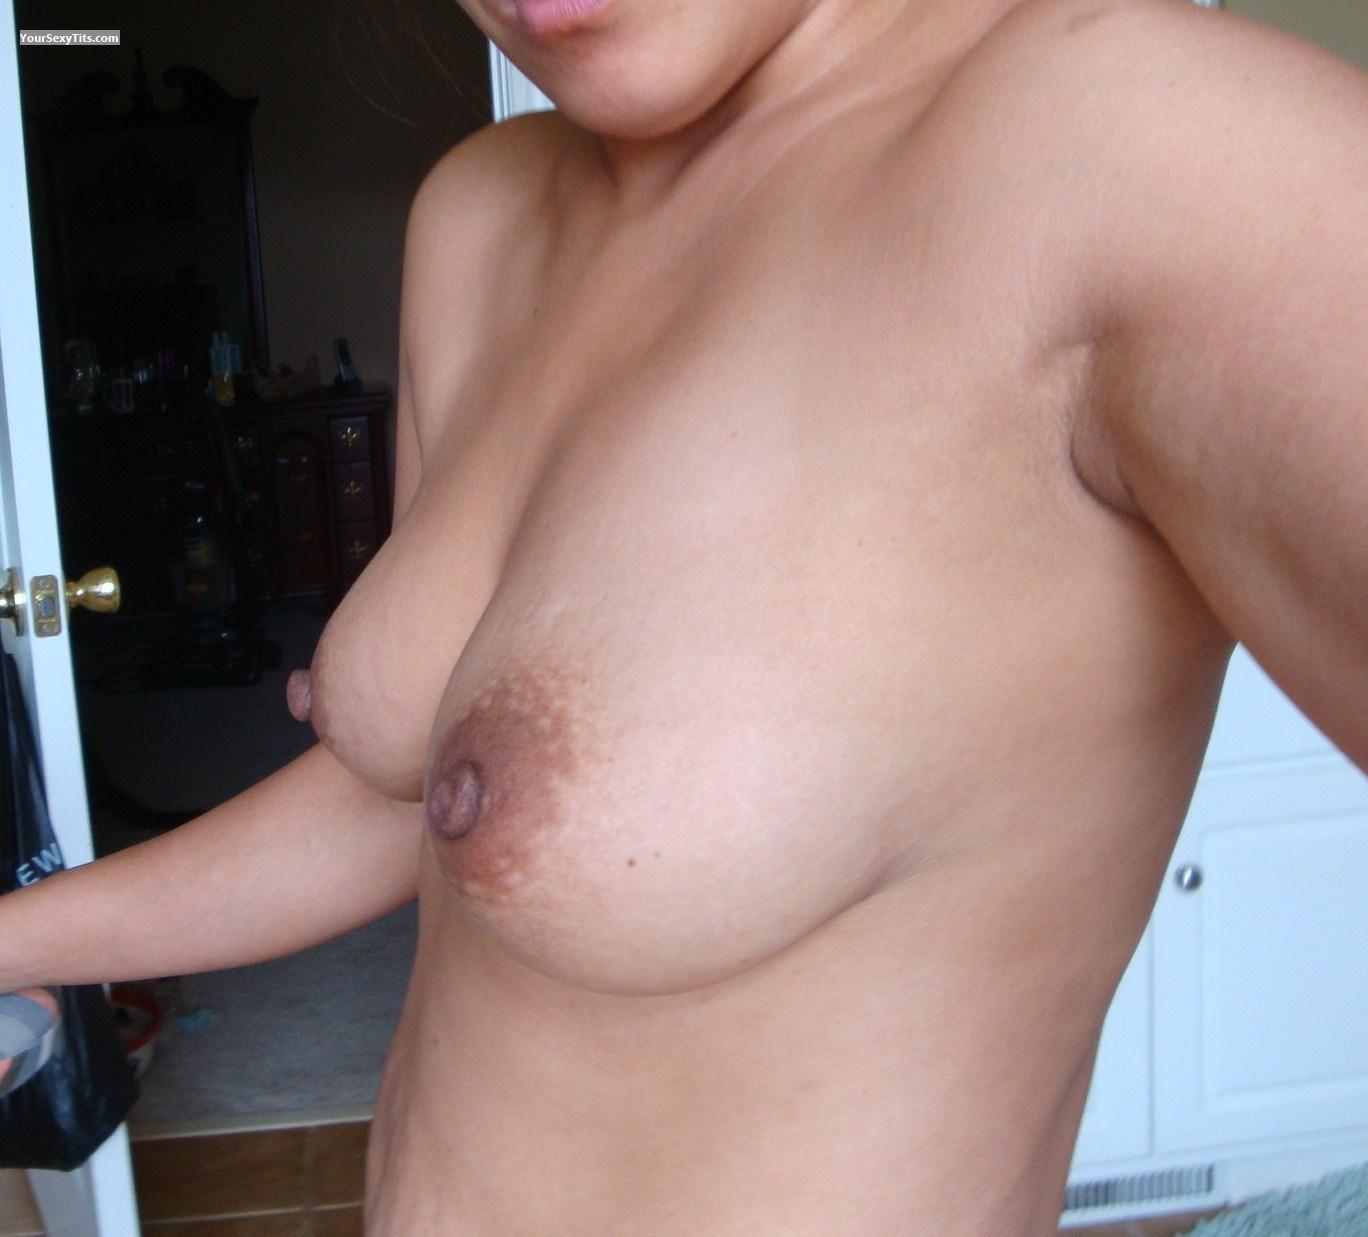 Tit Flash: My Medium Tits (Selfie) - Lori from United States